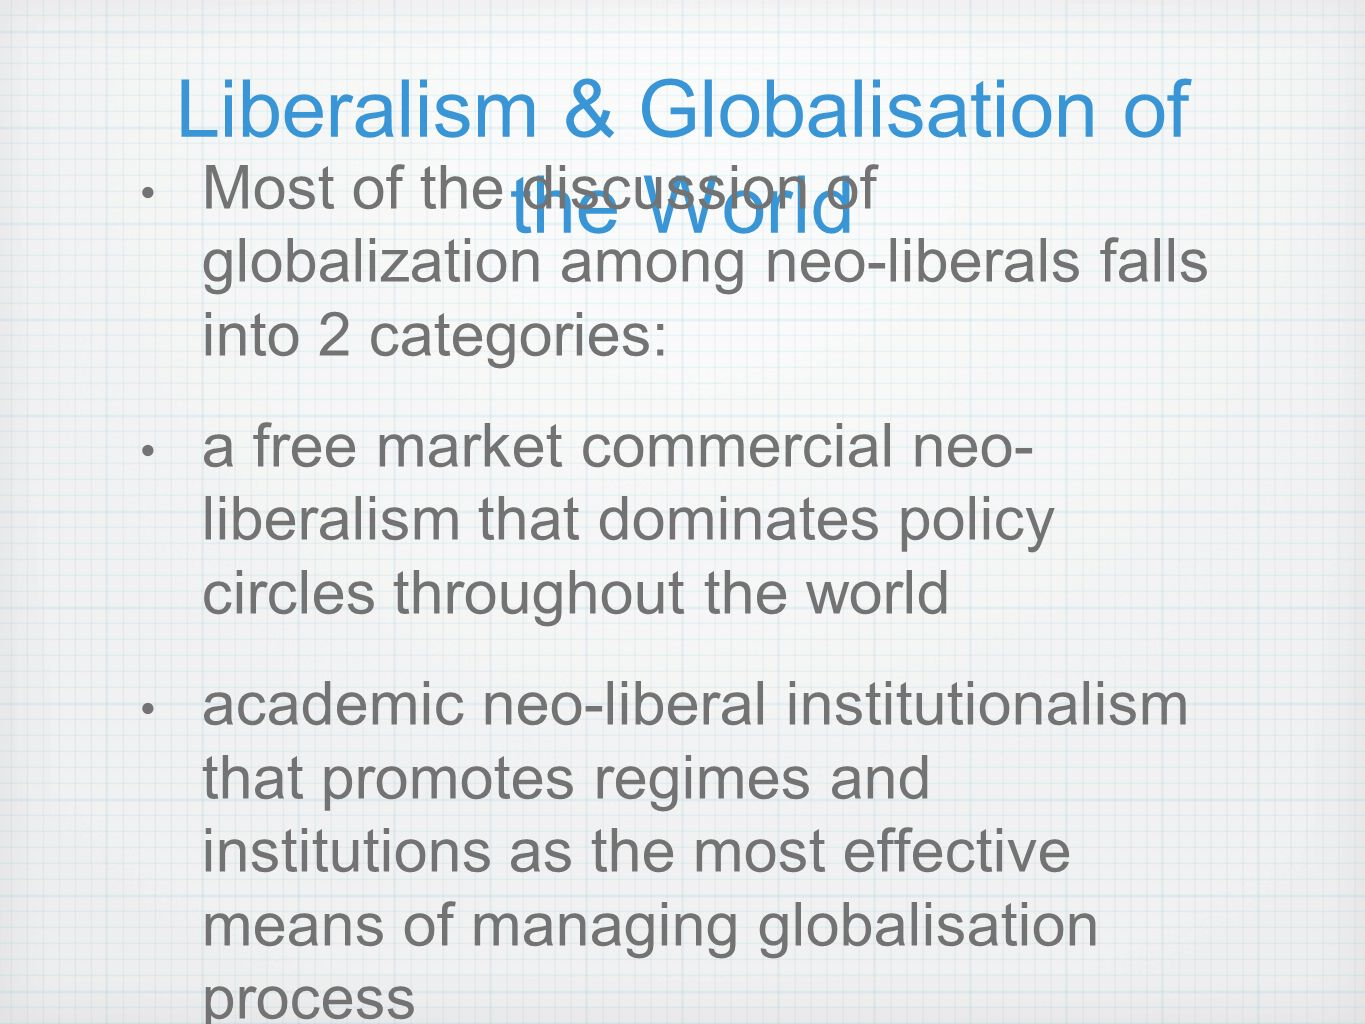 a discussion on the process of globalization Process is not a sign of disapproval  72 discussion of common measures of  inequality  economies goes hand in hand with the process of globalization.